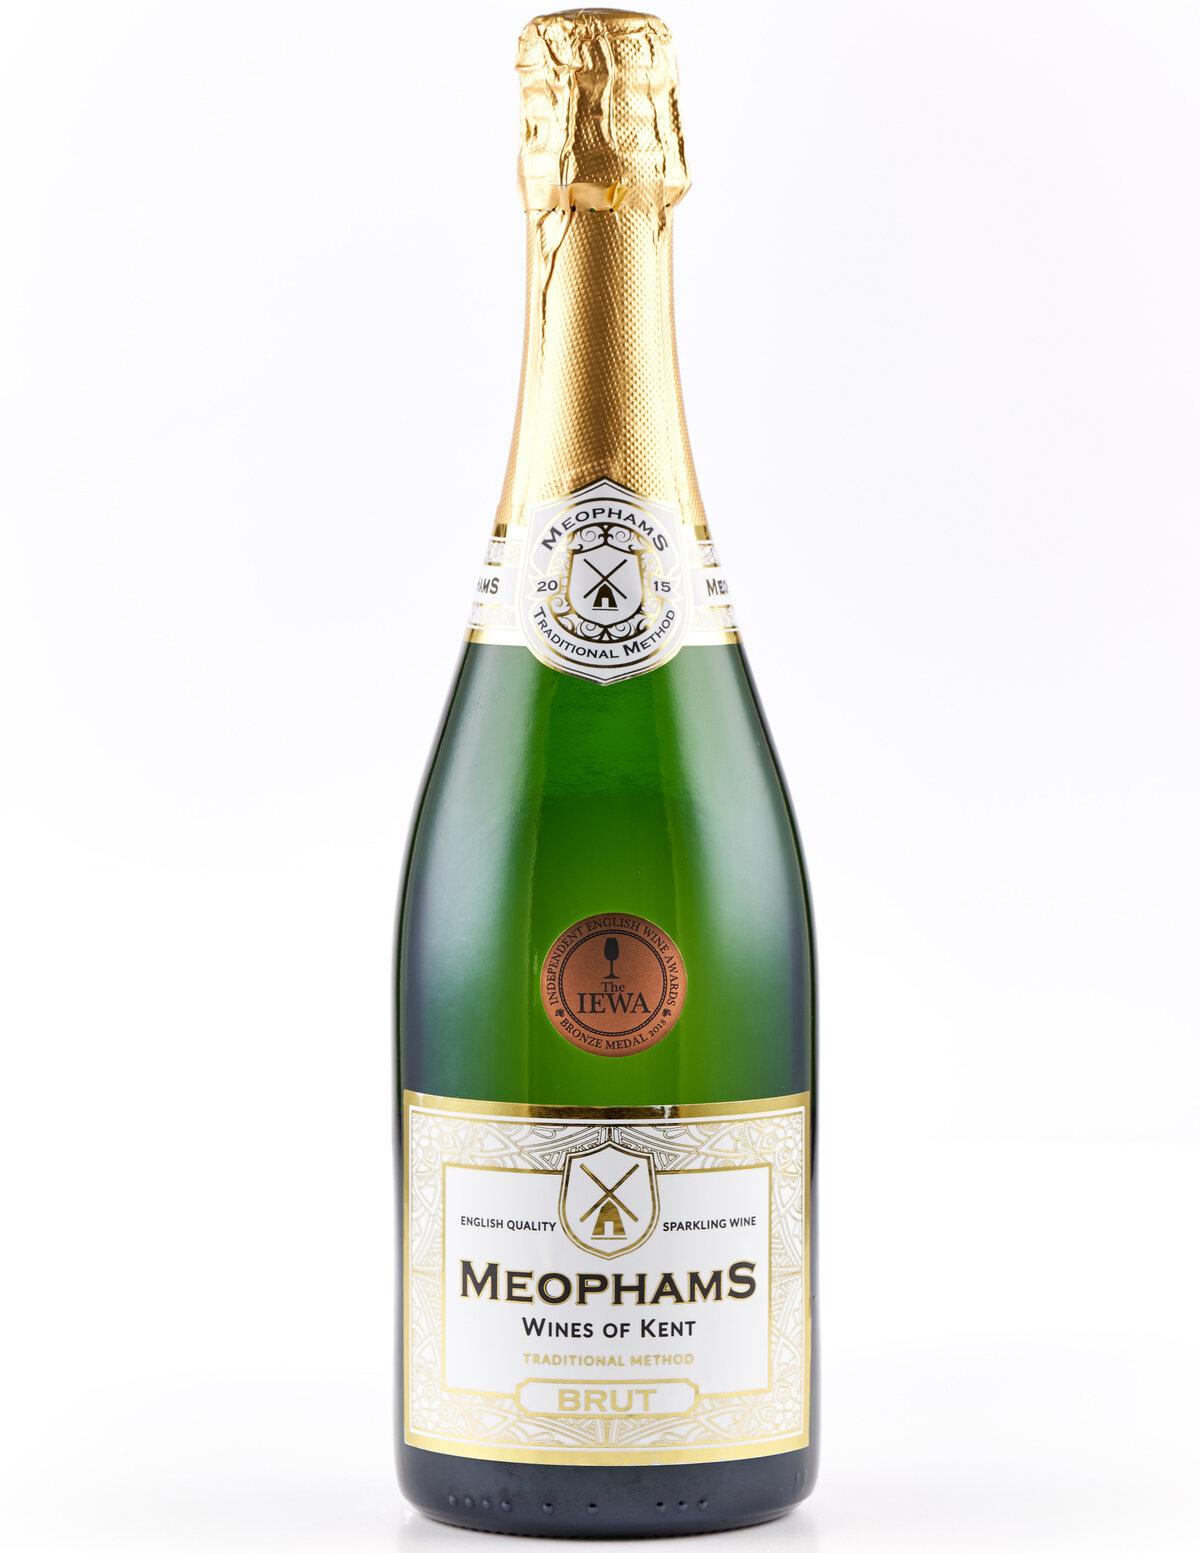 Meophams-Brut-2015-IEWA-Silver-English-Sparkling-Wine